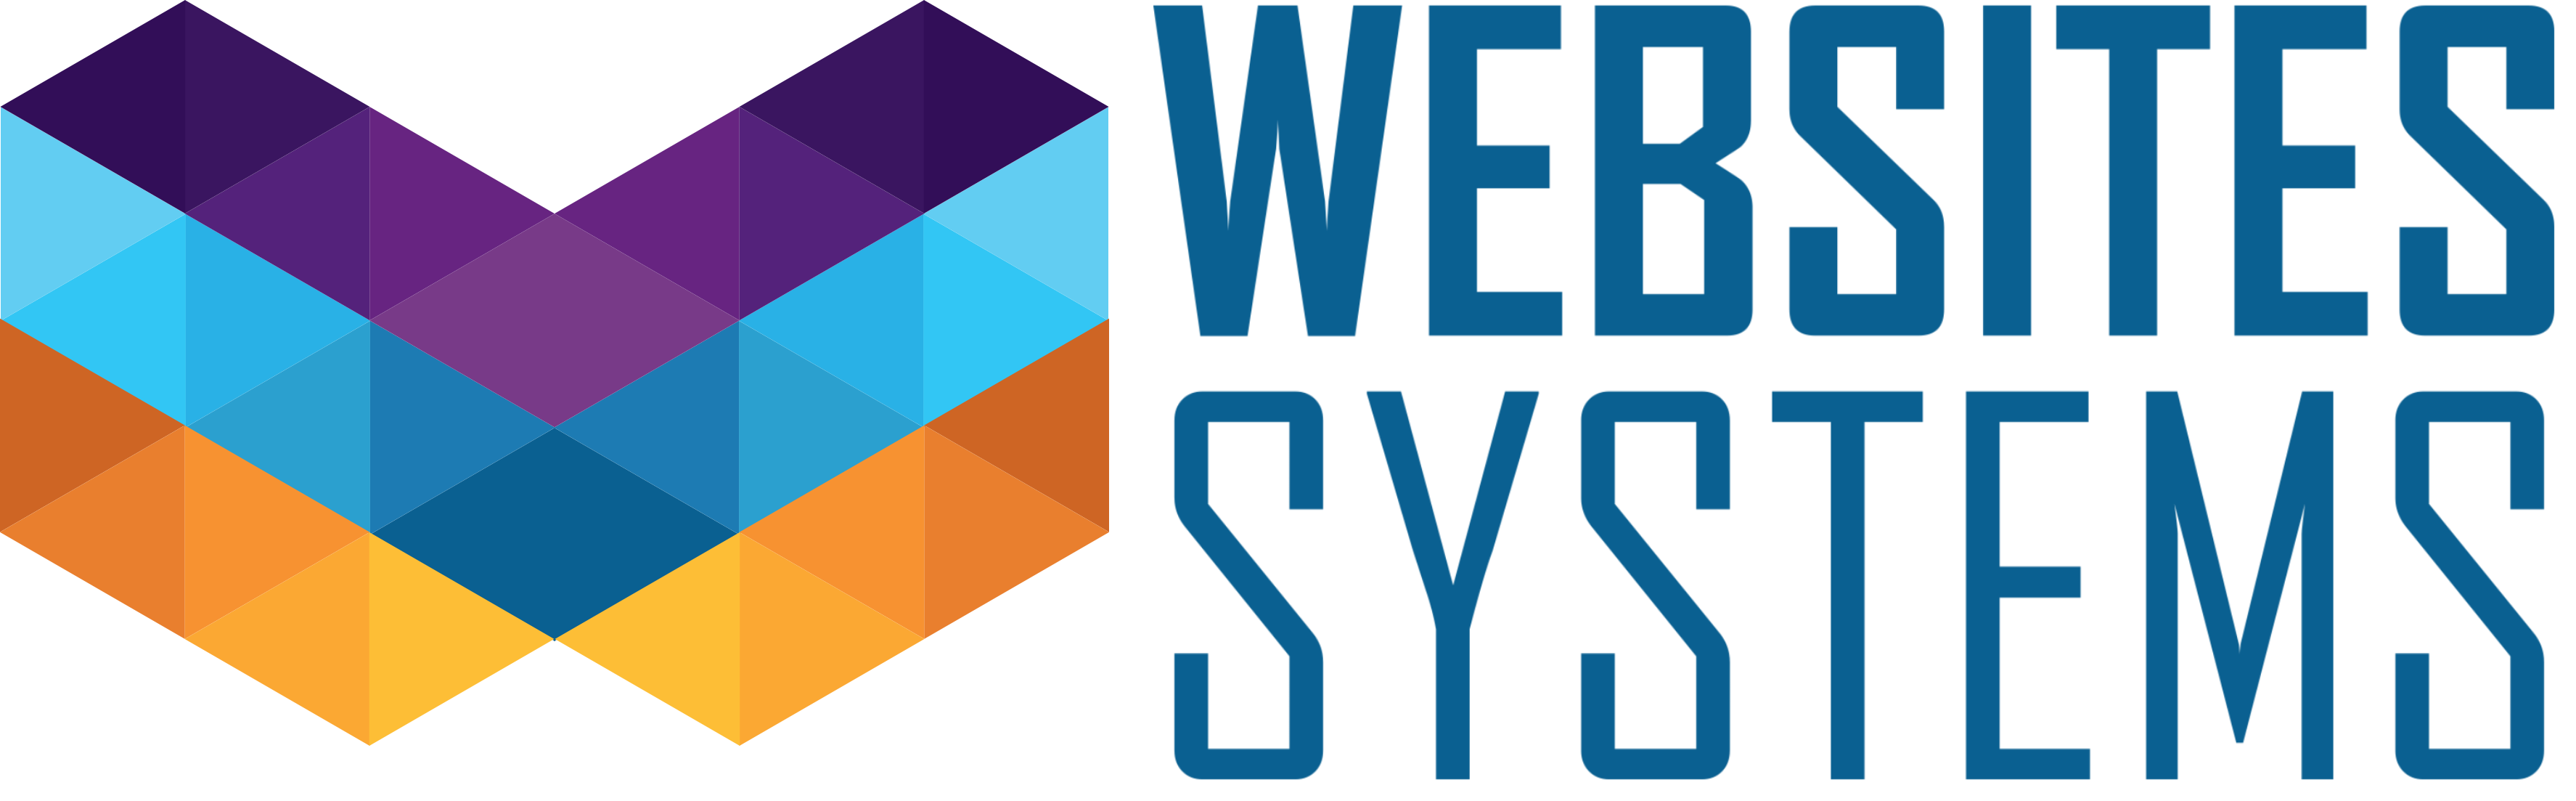 WEBSITES.SYSTEMS